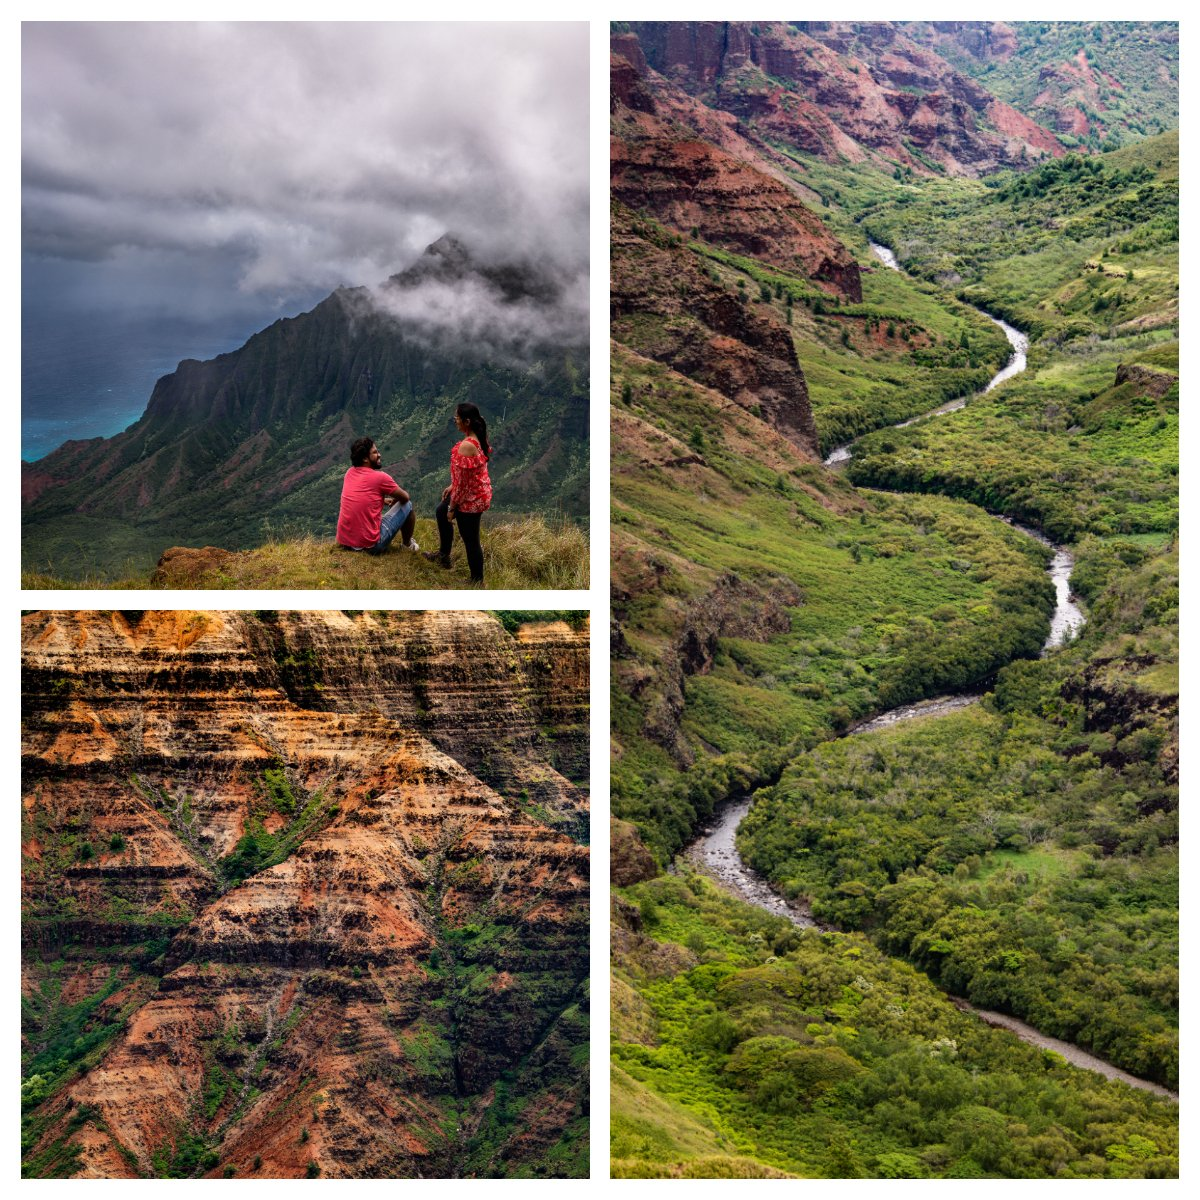 Kauai trip planning with things to do by Travel Anubhav